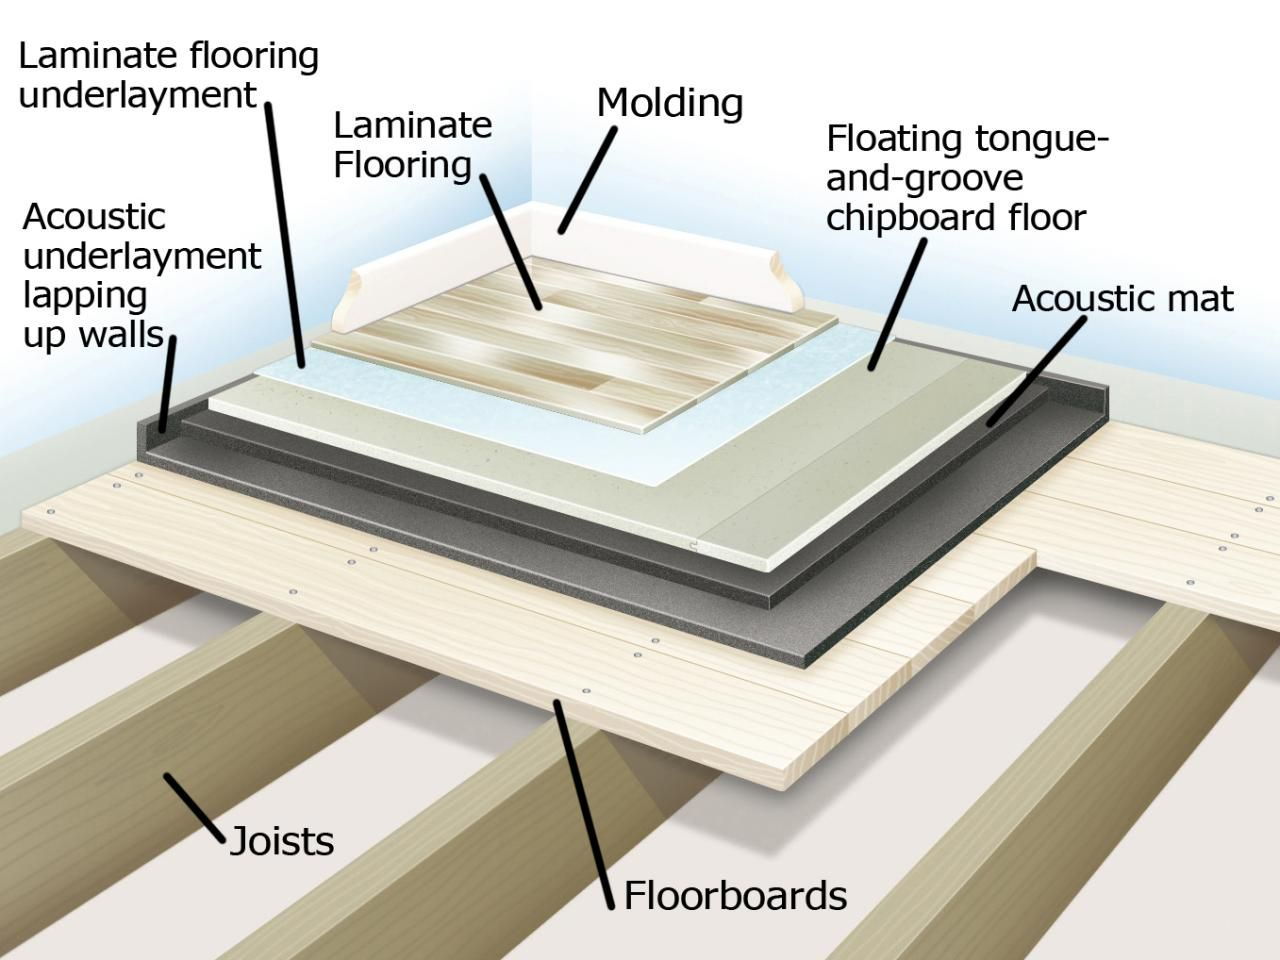 Soundproofing a Floor | Recording Studio | Pinterest | Hard floor ...